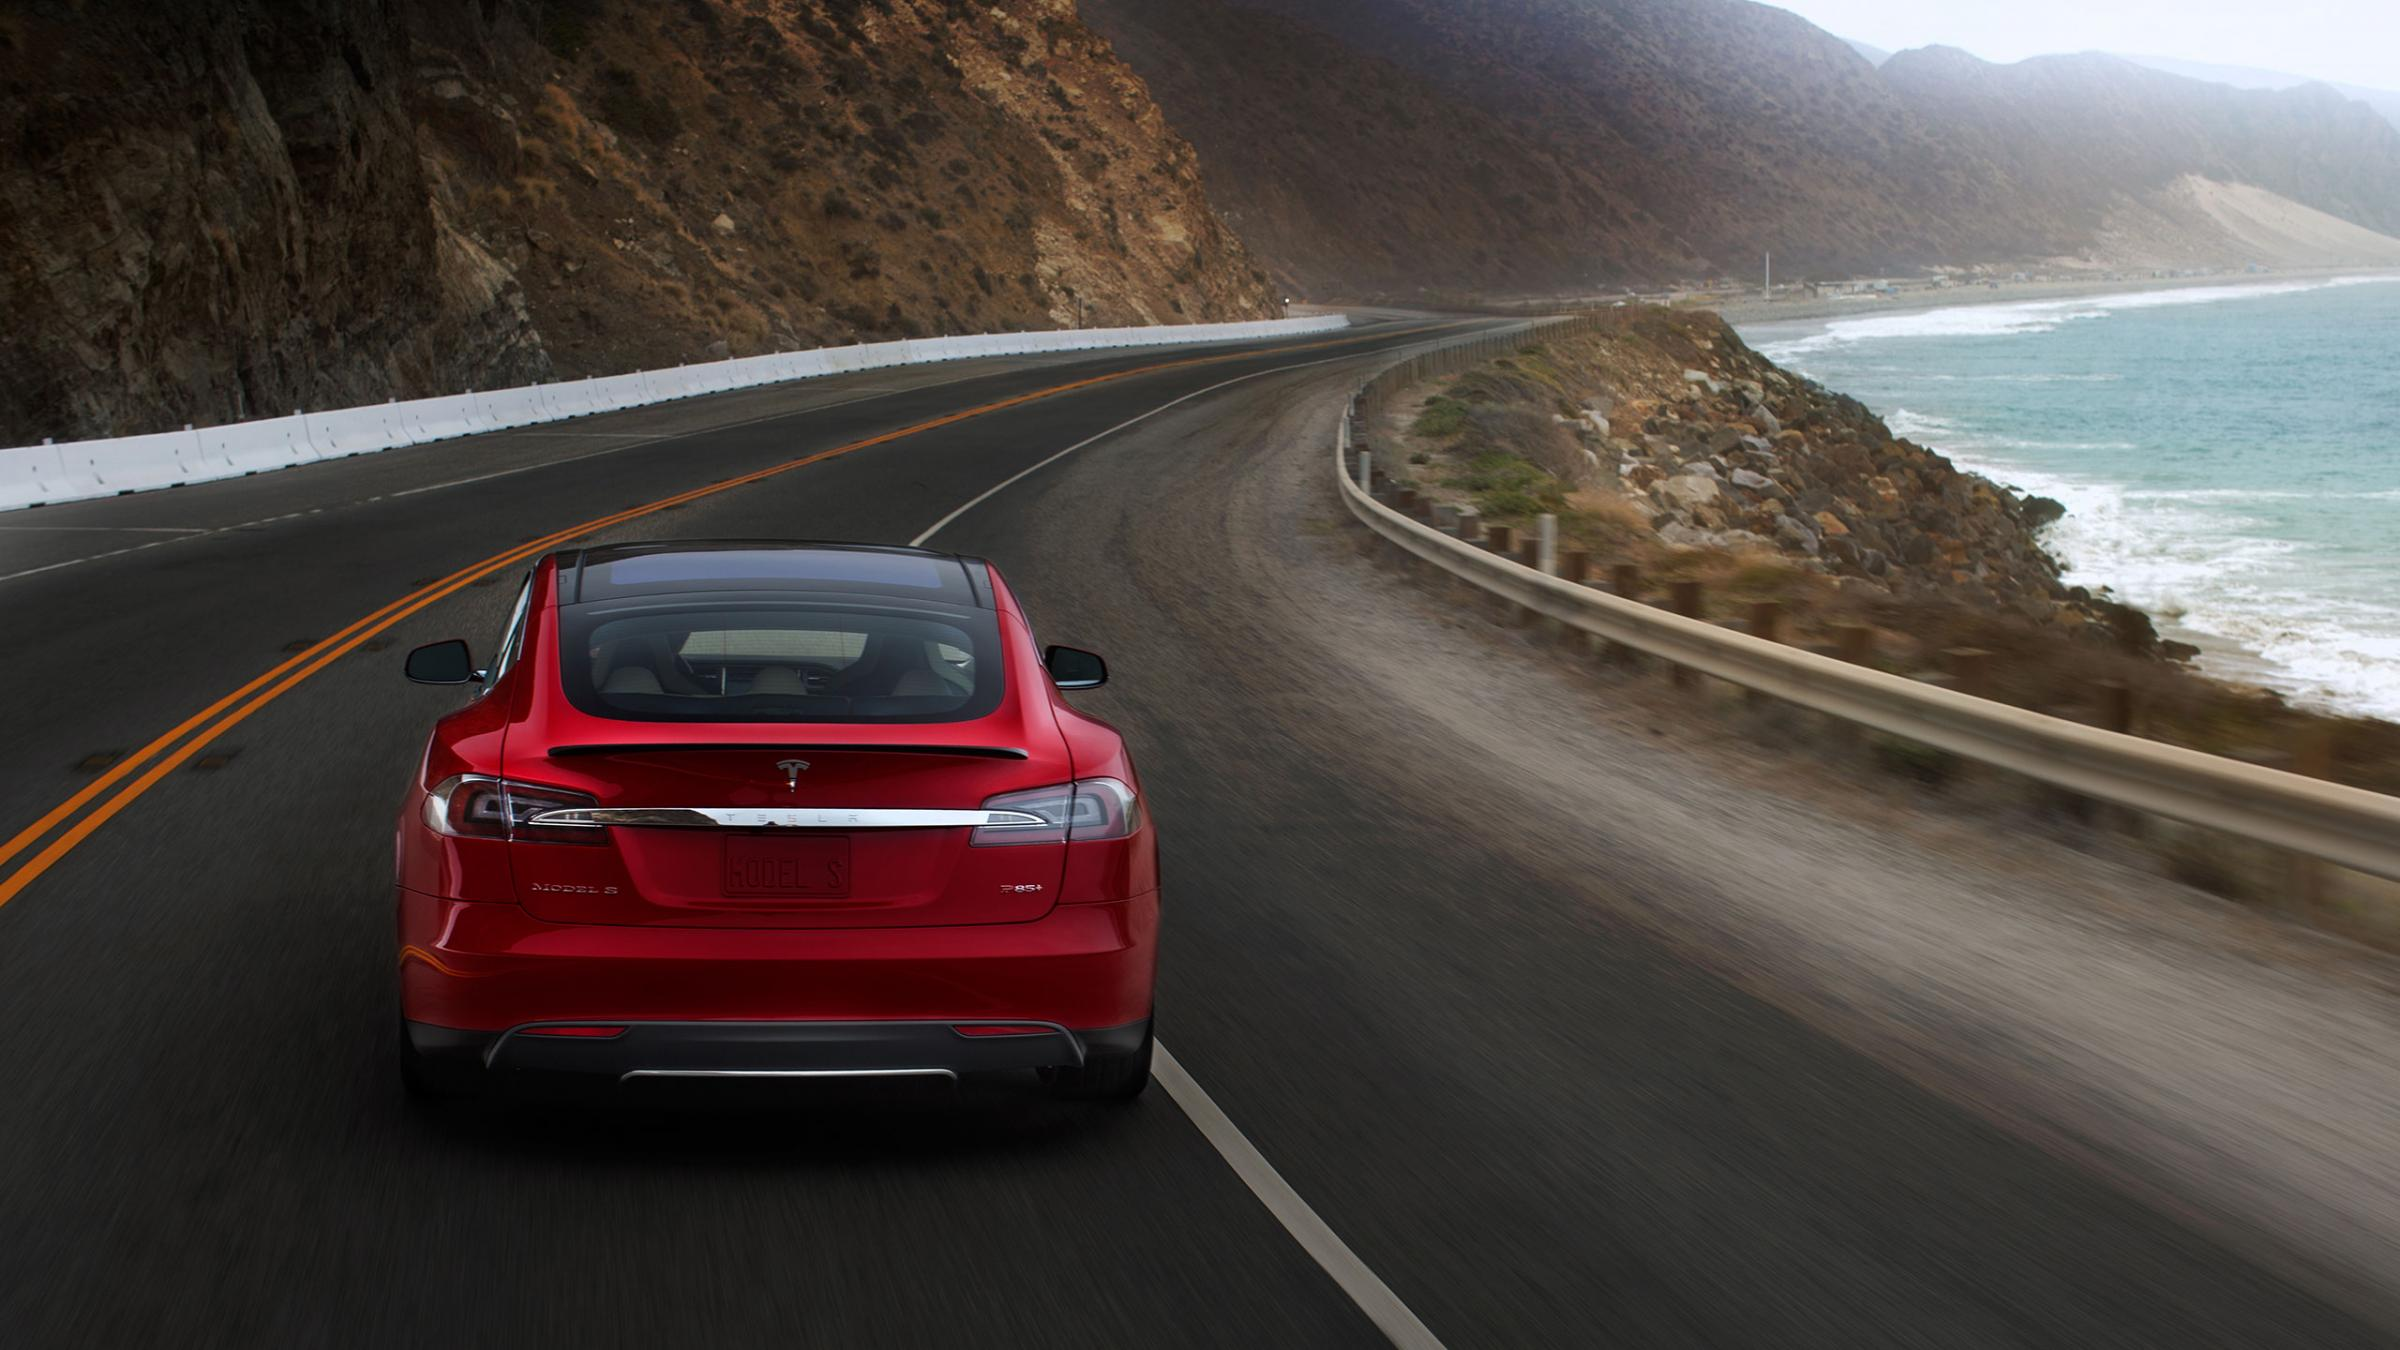 Tesla Driver Completes first Electric Vehicle U.S. Coast-to-Coast Trip with Model S